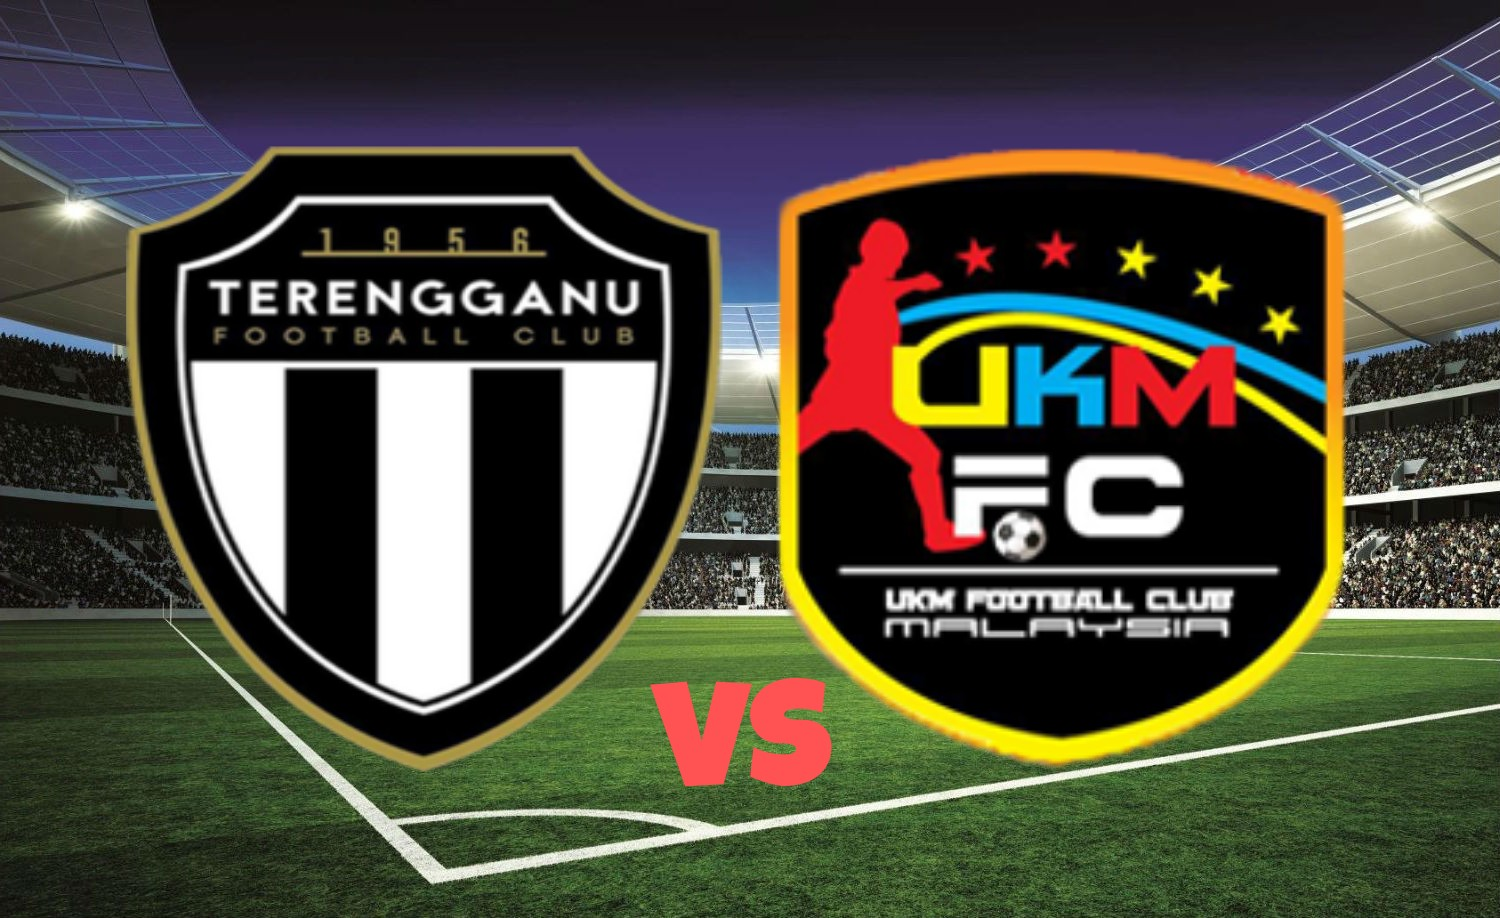 Live Streaming Terengganu FC II vs UKM FC 15.10.2018 Final Challenge Cup